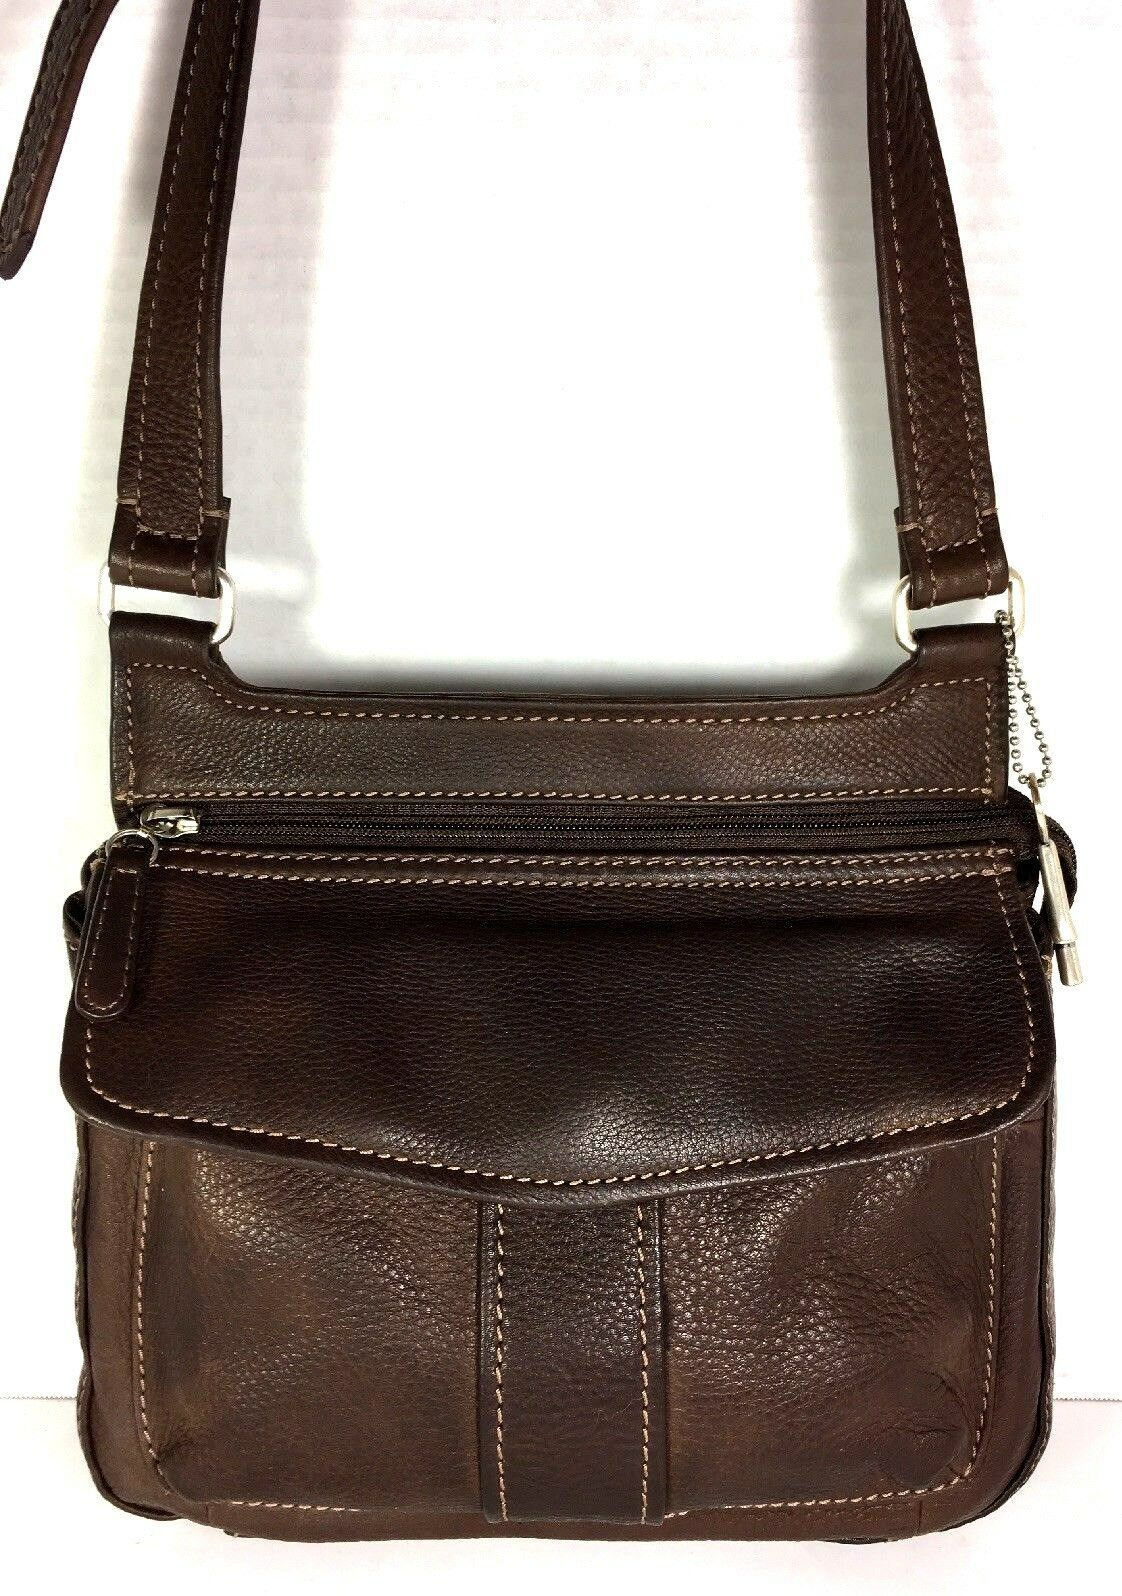 Fossil Vintage Brown Pebbled Leather Multi Pocket Multi Compartment Shoulder Bag